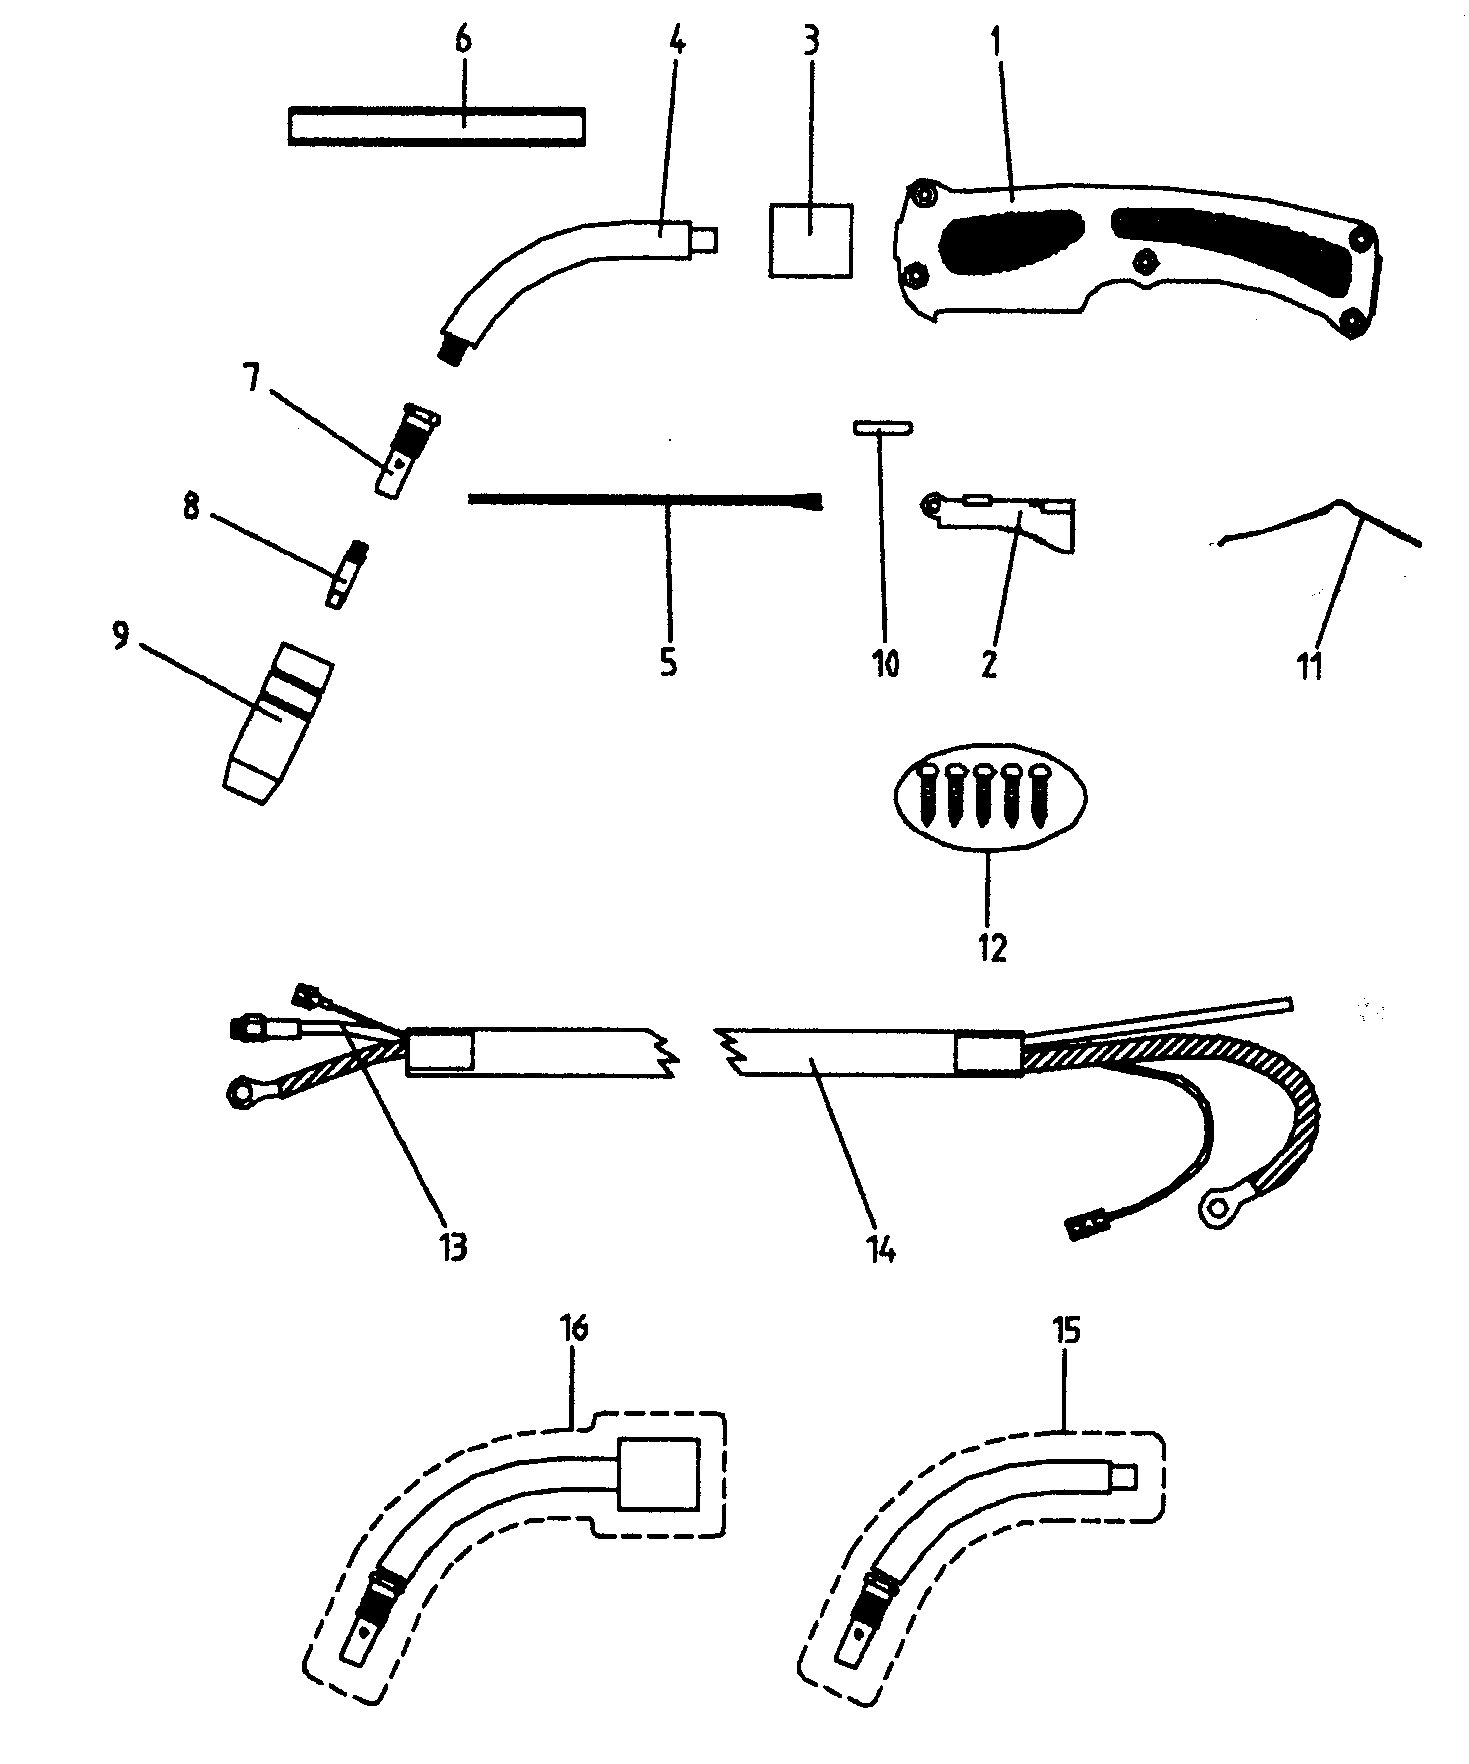 [WRG-1056] Diagram For Welding